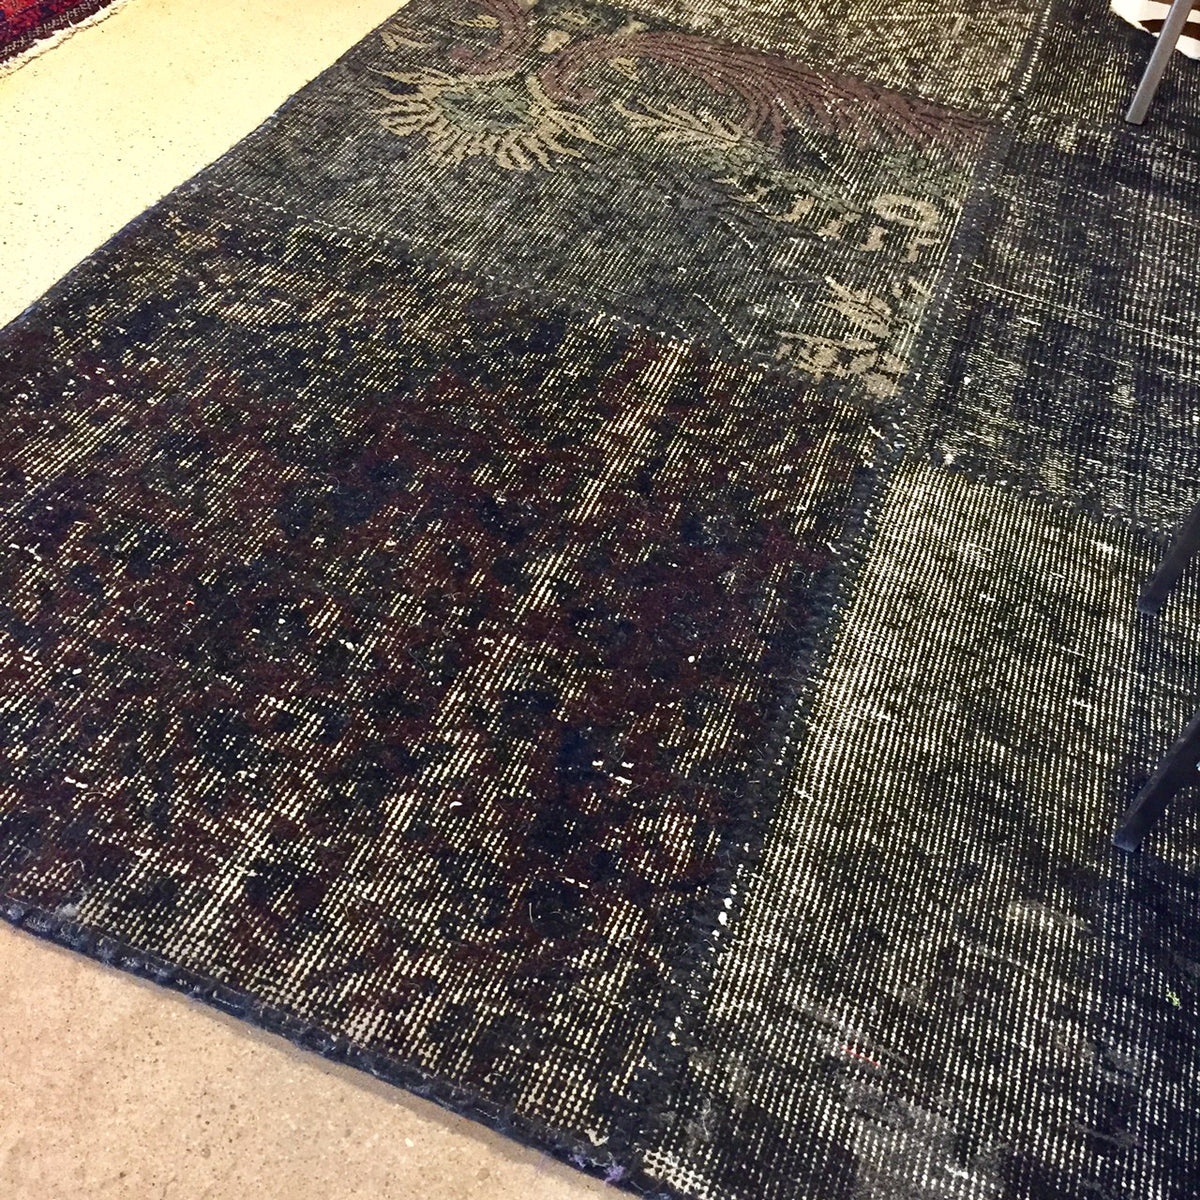 Ebony and Mahogany Vintage Patchwork Over Dye